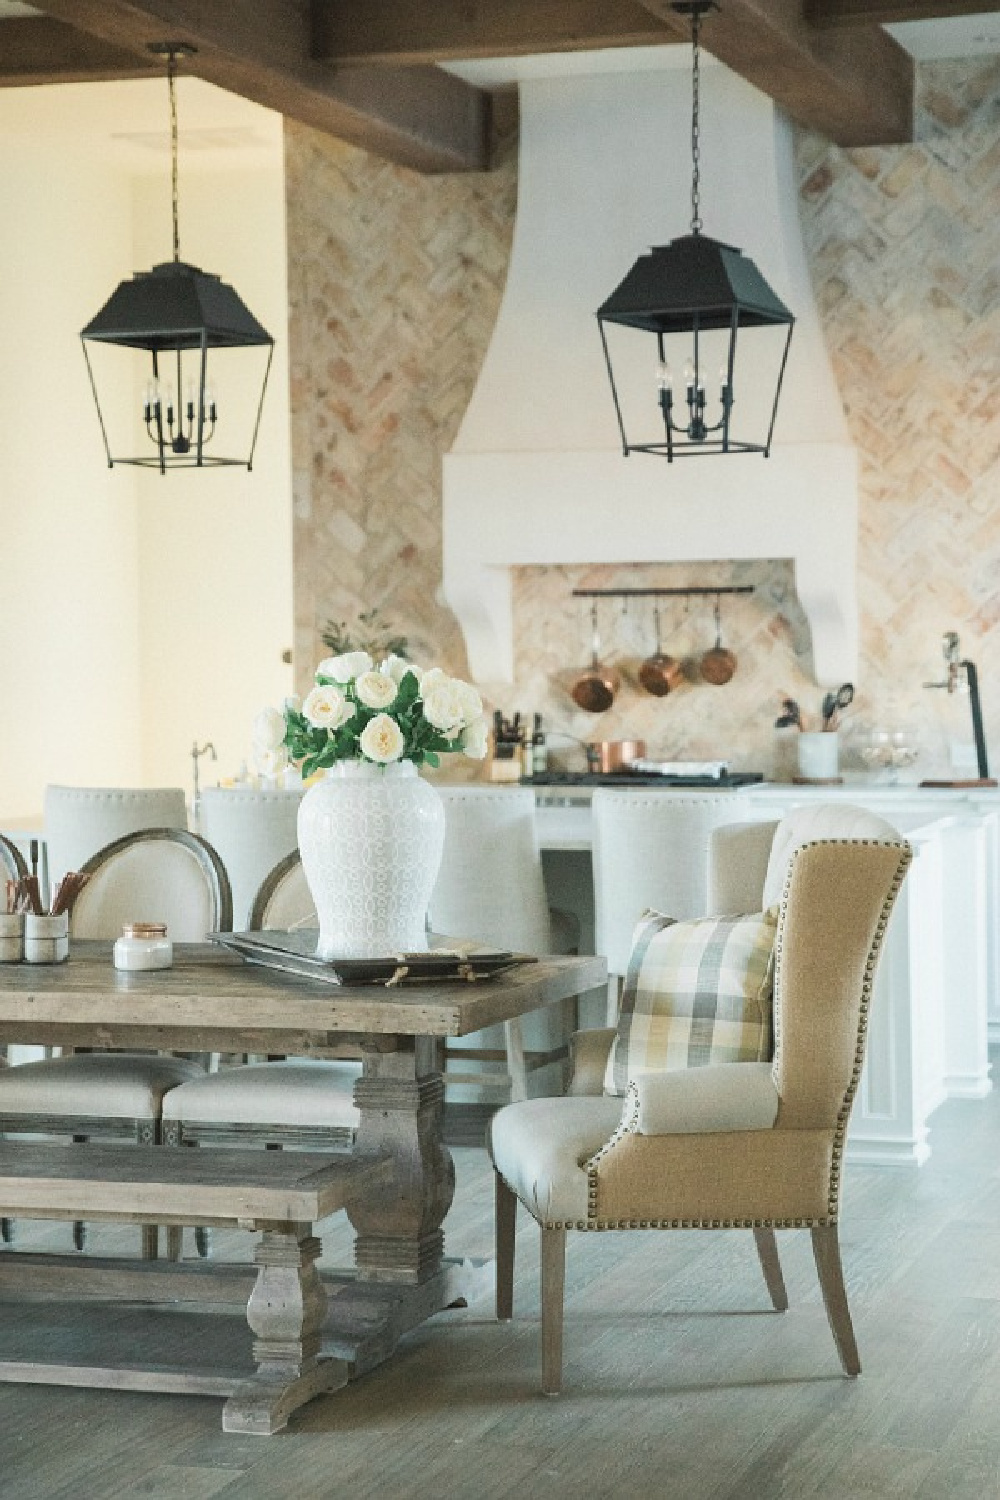 French country farmhouse kitchen with rustic lanterns, farm table, wing chairs, reclaimed Chicago brick, and Sherwin Williams Alabaster white paint on walls. Brit Jones Design. See more Gorgeous European Country Interior Design Inspiration on Hello Lovely. #europeancountry #frenchfarmhouse #interiordesign